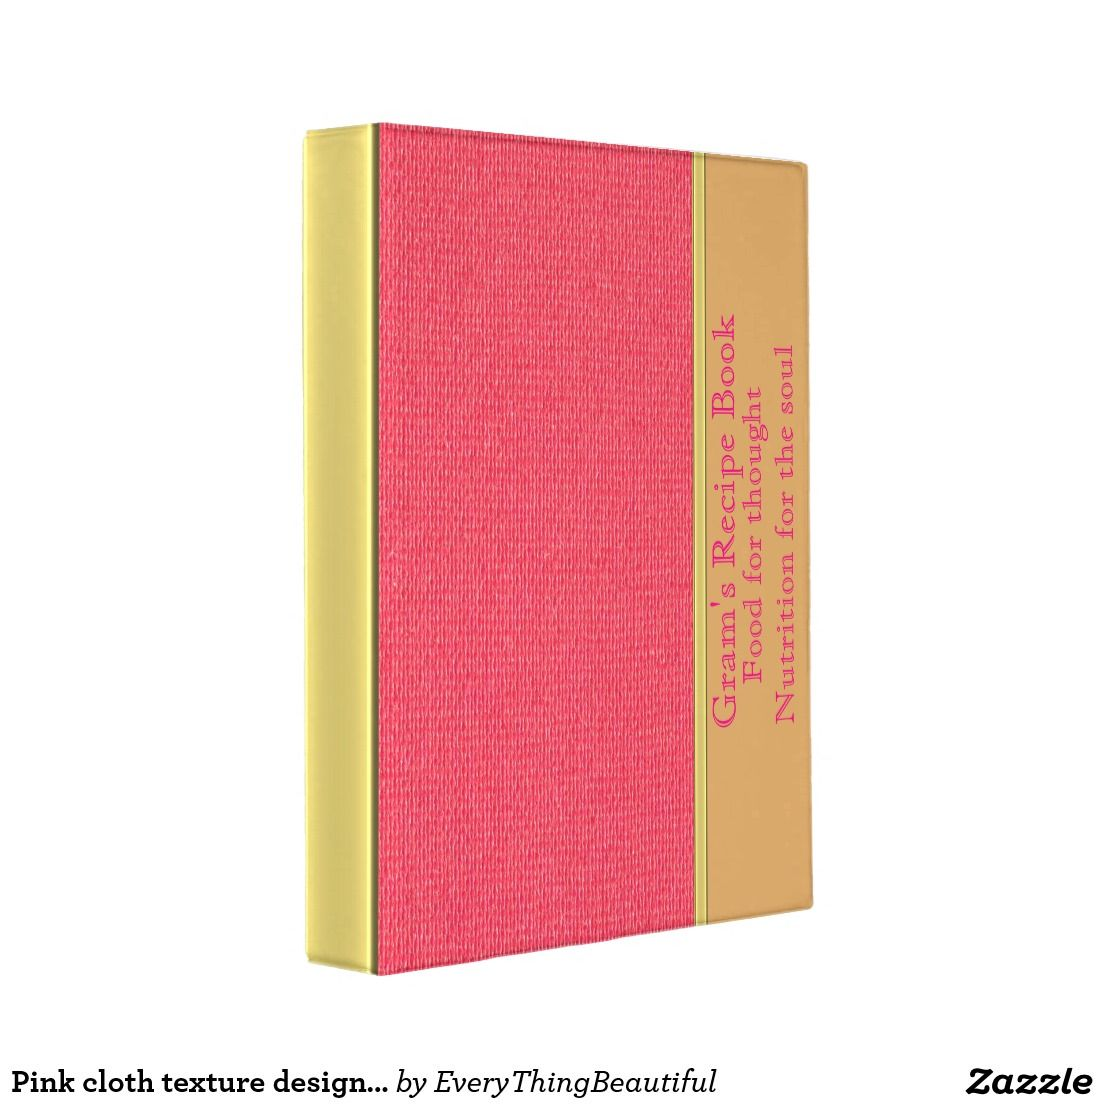 Pink cloth texture design with a gold stripe bar  mini binder is part of Pink Clothes Texture - Pink cloth texture recipe book design  With a gold stripe bar texture down the back of the binder  On this vinyl binder